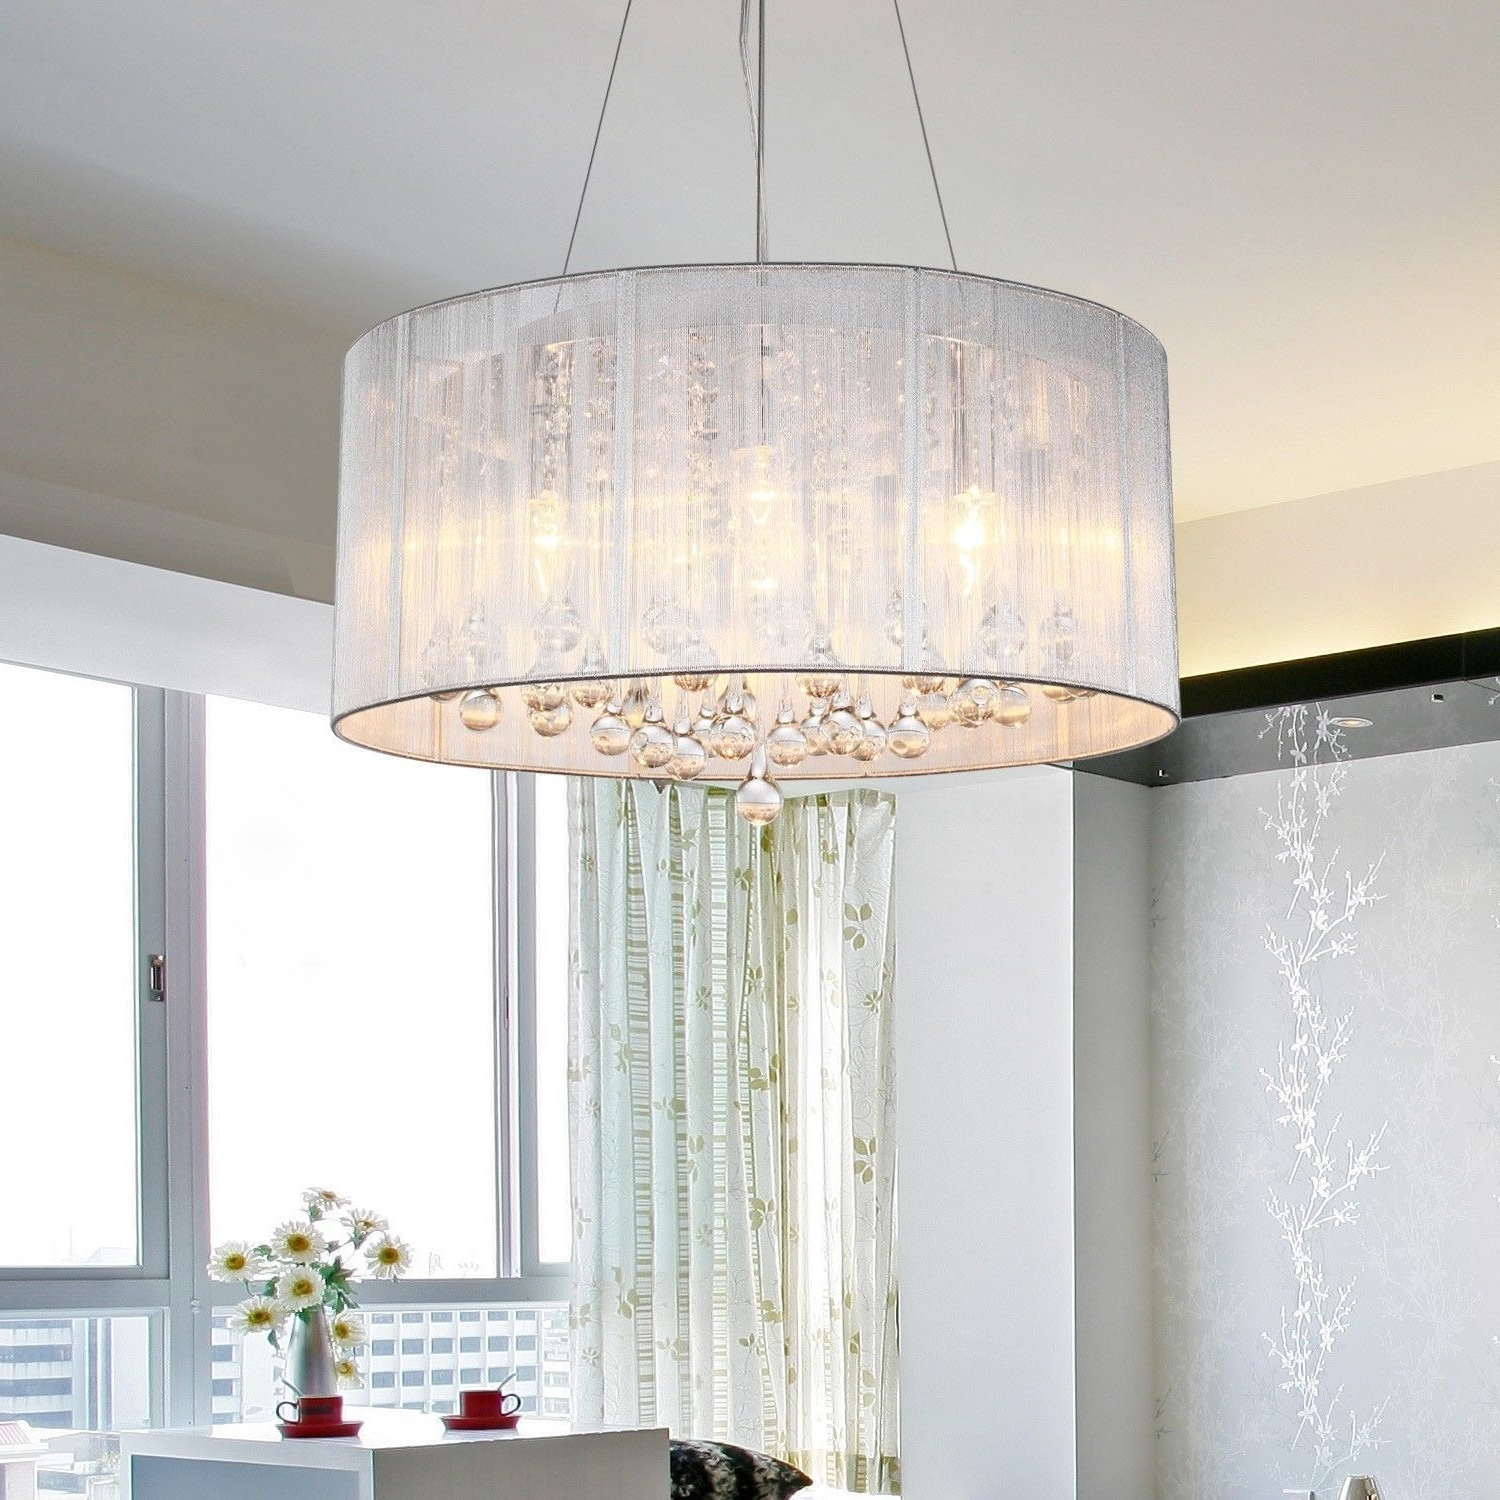 Well Liked Awesome Lamp Shades For Chandeliers Chandelier From The Elegant Inside Lampshades For Chandeliers (View 6 of 20)